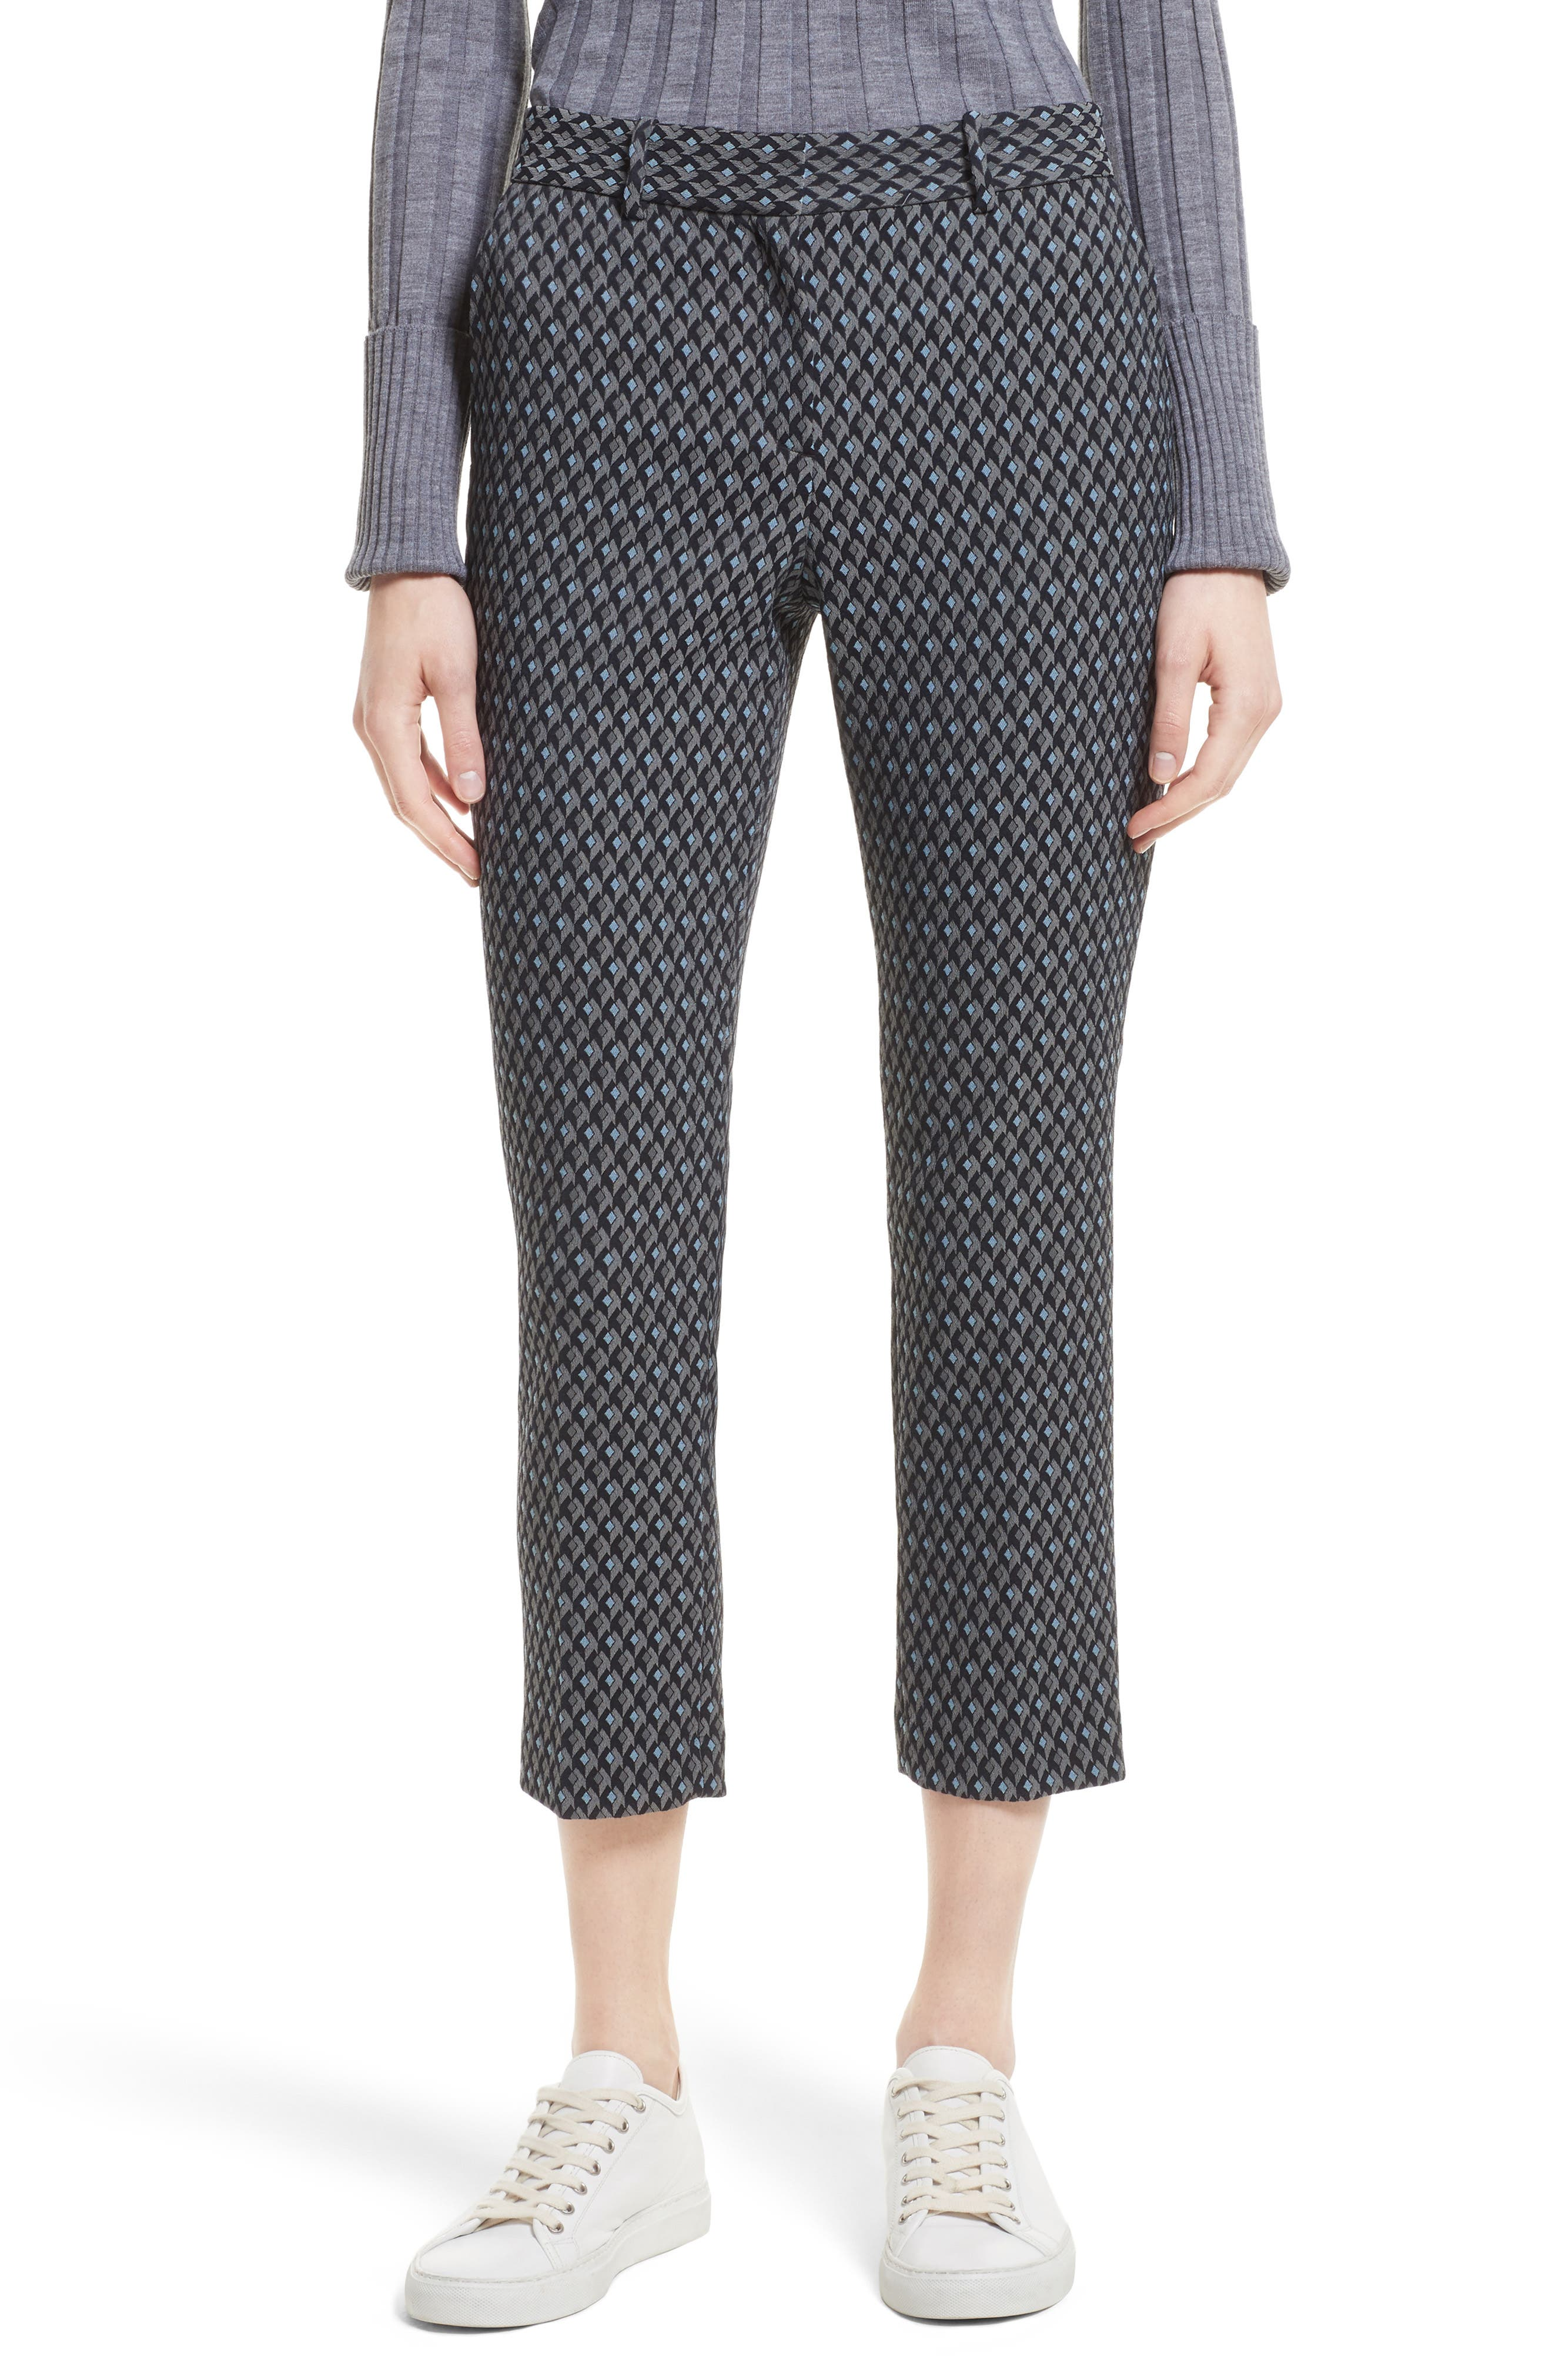 Alternate Image 1 Selected - Theory Treeca 2 Geo Jacquard Stretch Crop Pants